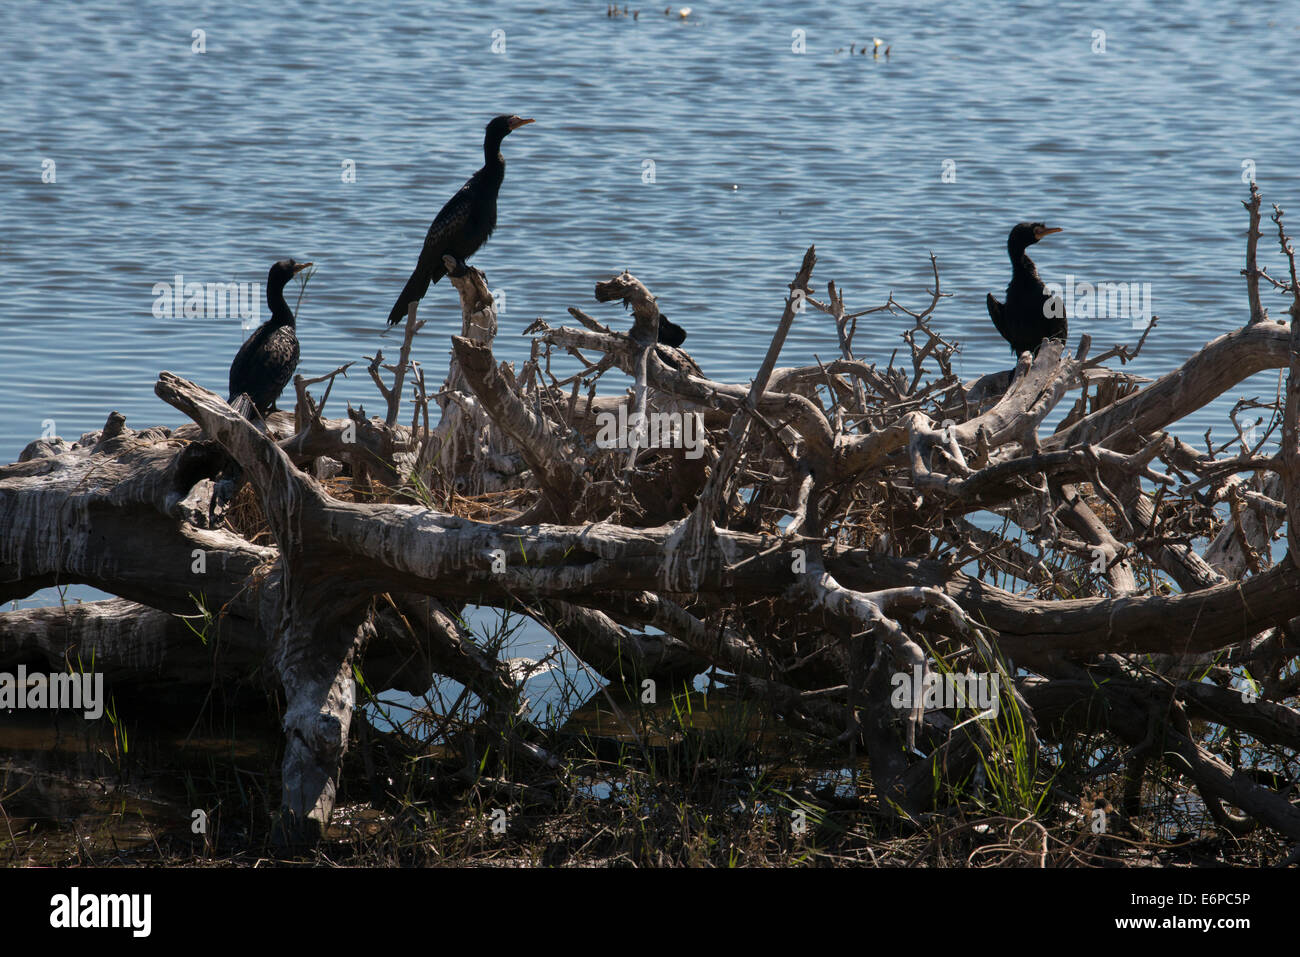 Birds in Zambia. From Victoria Falls is possible to visit the nearby Botswana. Specifically Chobe National Park. - Stock Image